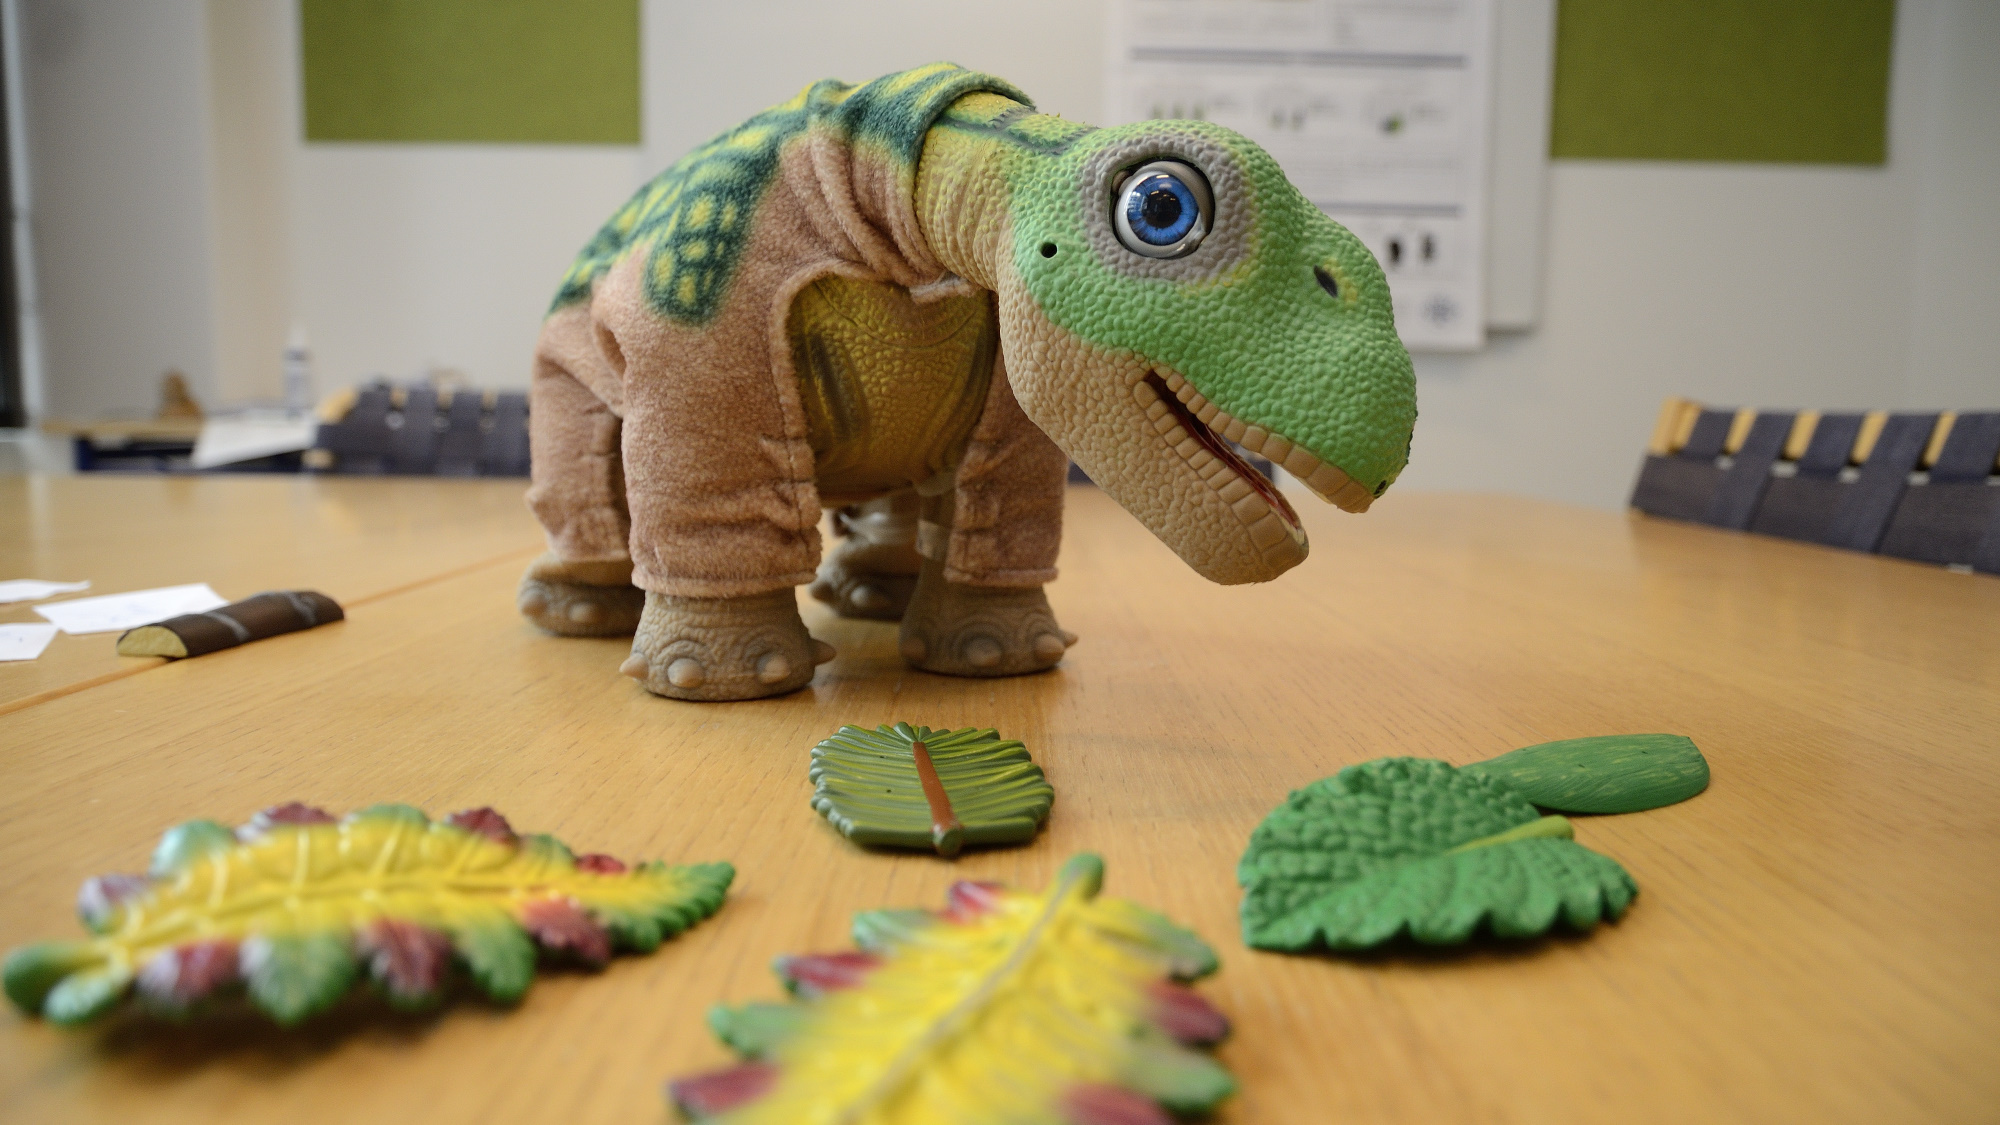 The Pleo rb is a versatile toy robot. It needs food and attention, like any real pet.